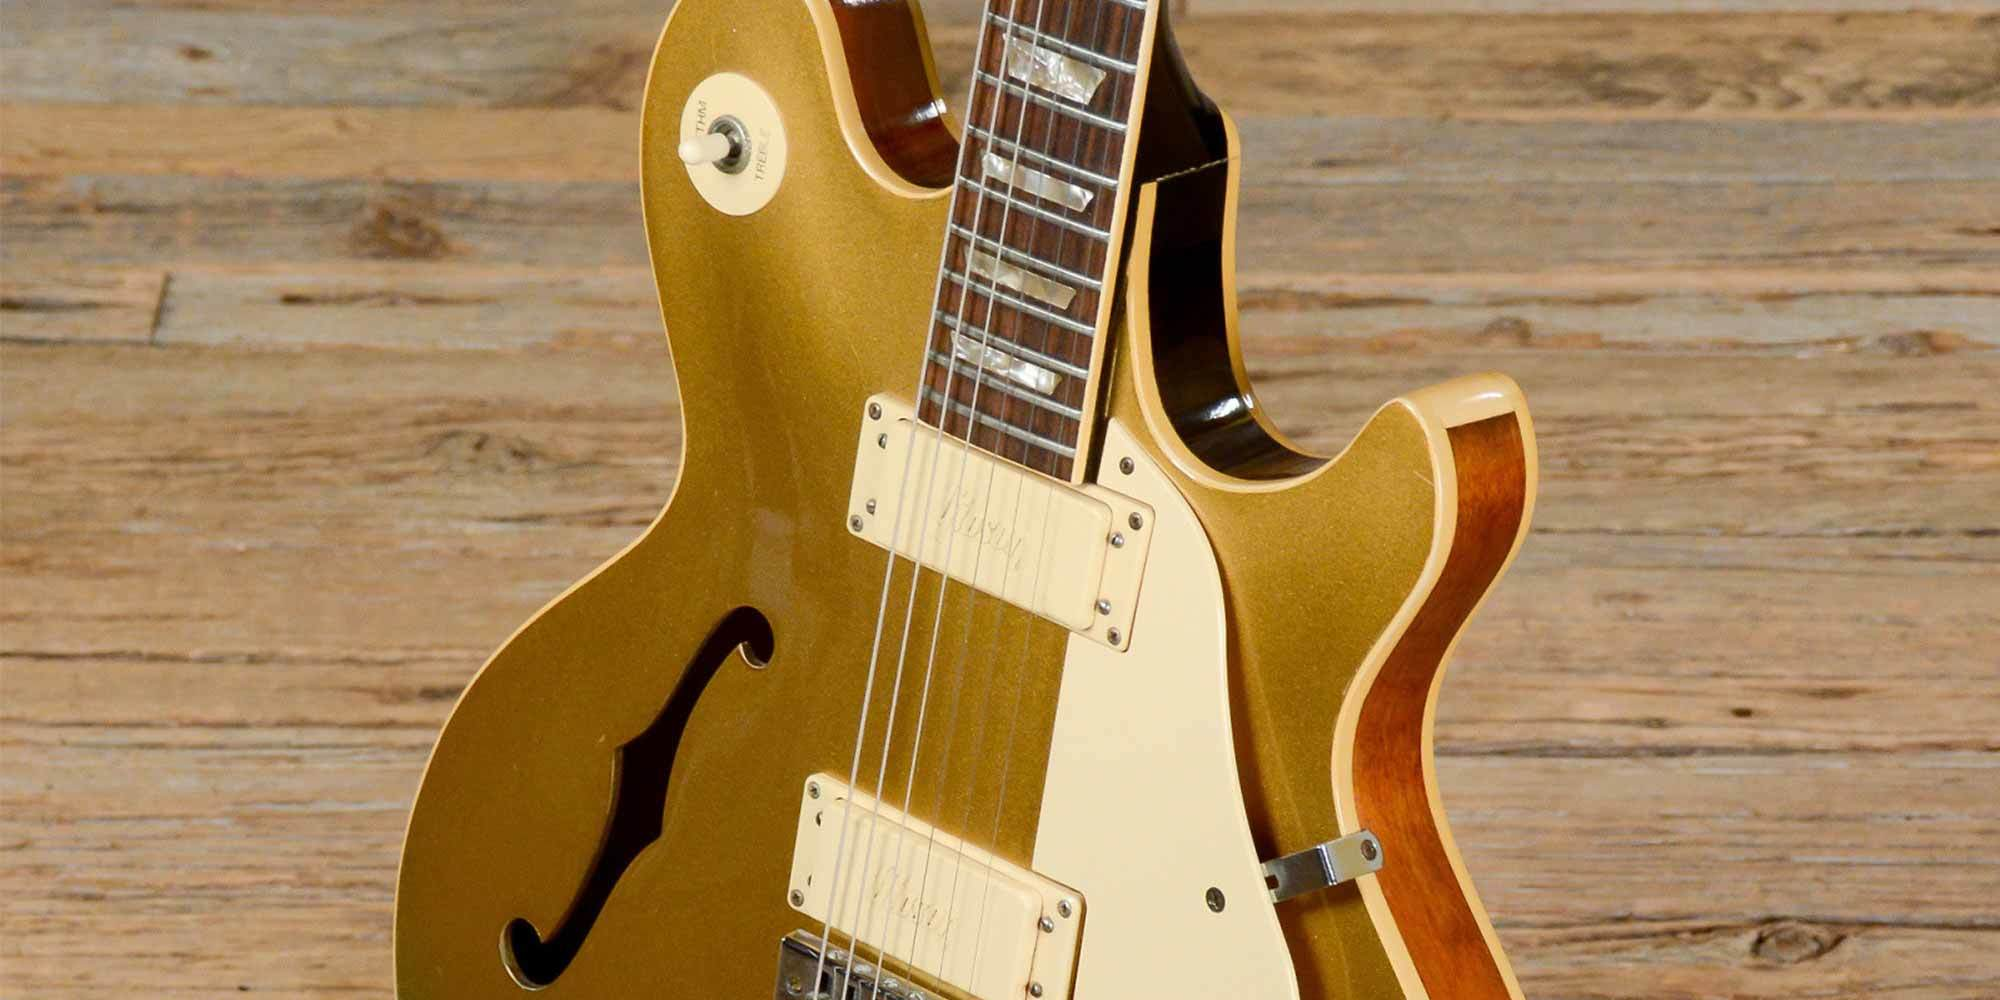 ... private collector and Norlin-era authority, John Kelley gives us the  skinny on one of the most unique instruments to ever carry the Les Paul  moniker: ...